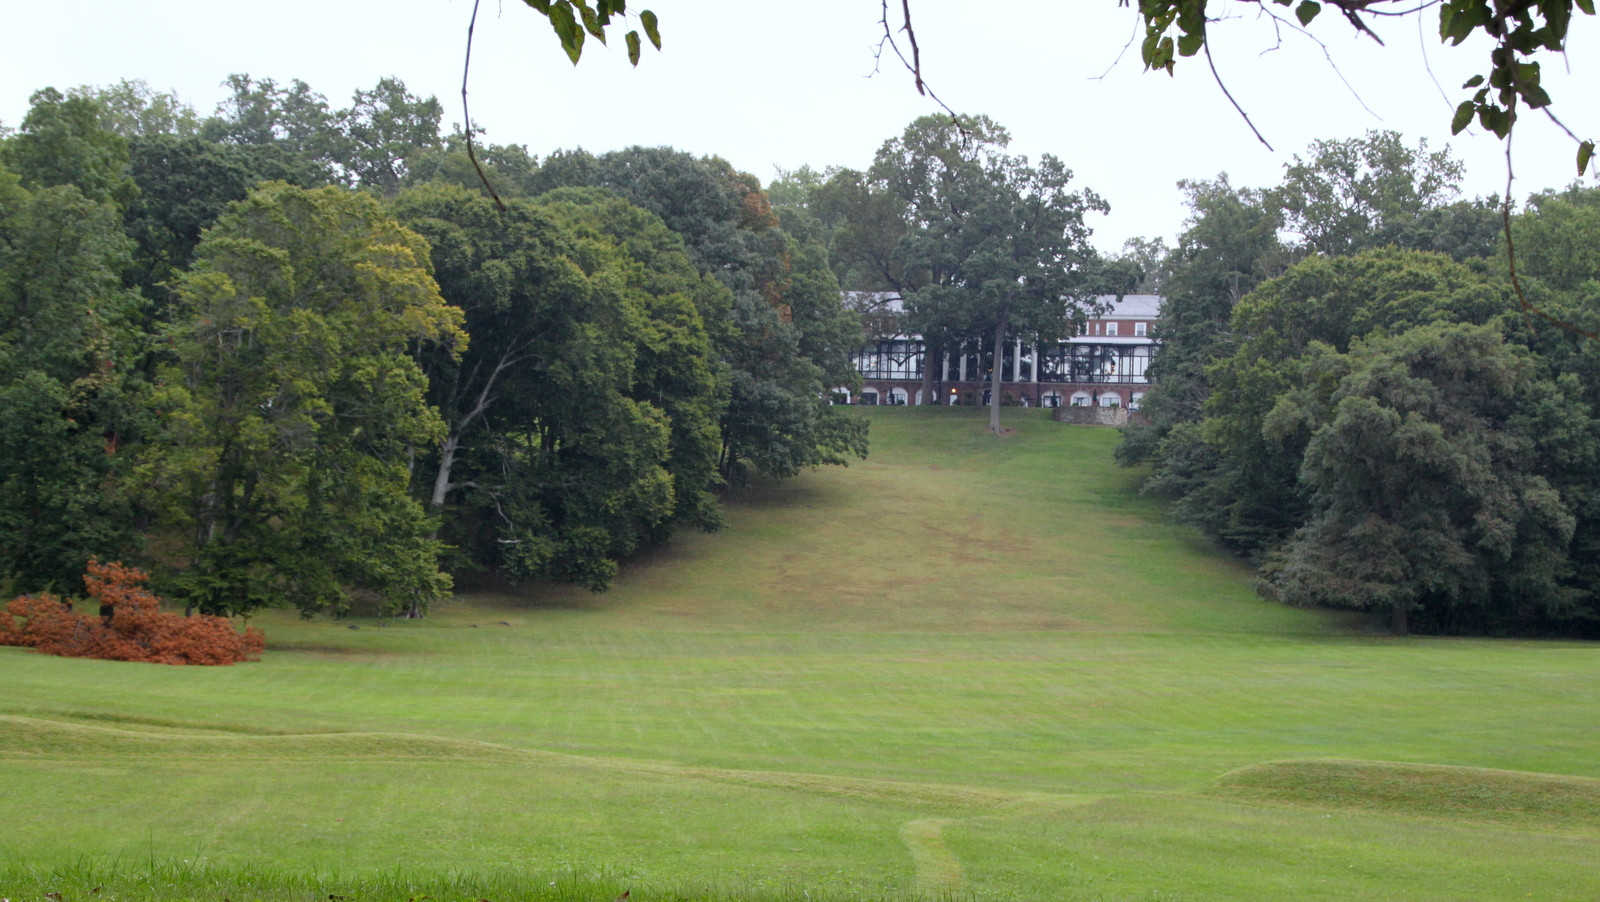 Viewed from Falls Road, the Baltimore Country Club property proposed for rezoning. (Fern Shen)